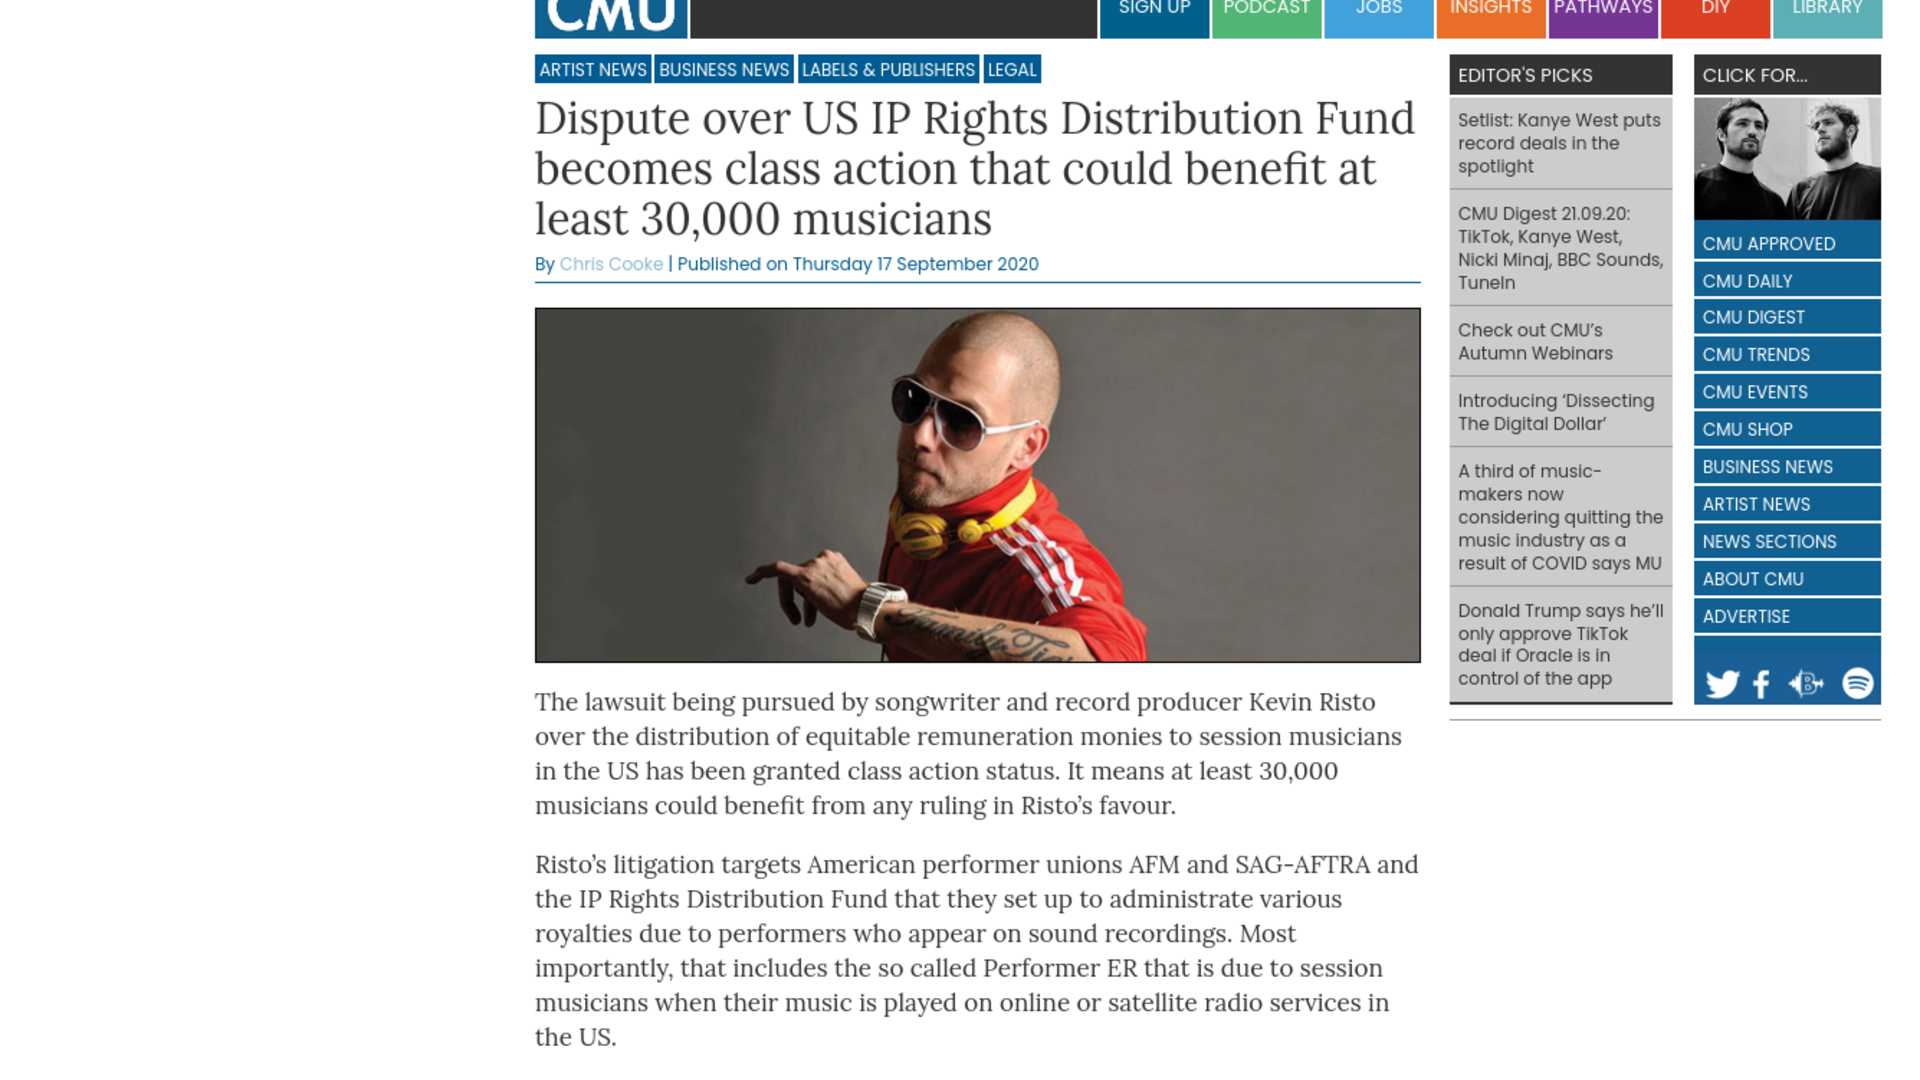 Fairness Rocks News Dispute over US IP Rights Distribution Fund becomes class action that could benefit at least 30,000 musicians